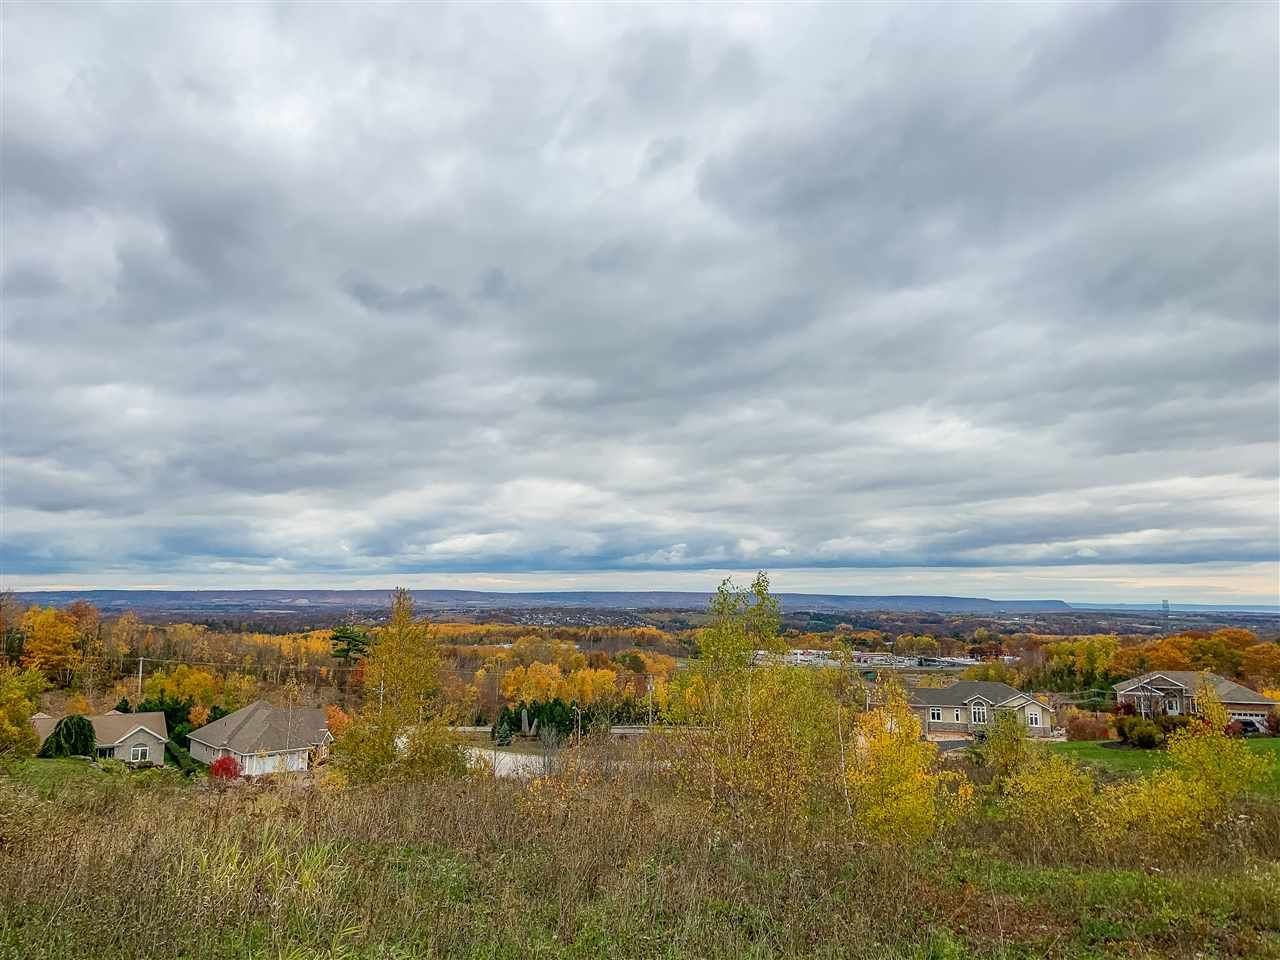 Main Photo: Lot 55 Finch Court in Canaan: 404-Kings County Vacant Land for sale (Annapolis Valley)  : MLS®# 202022792